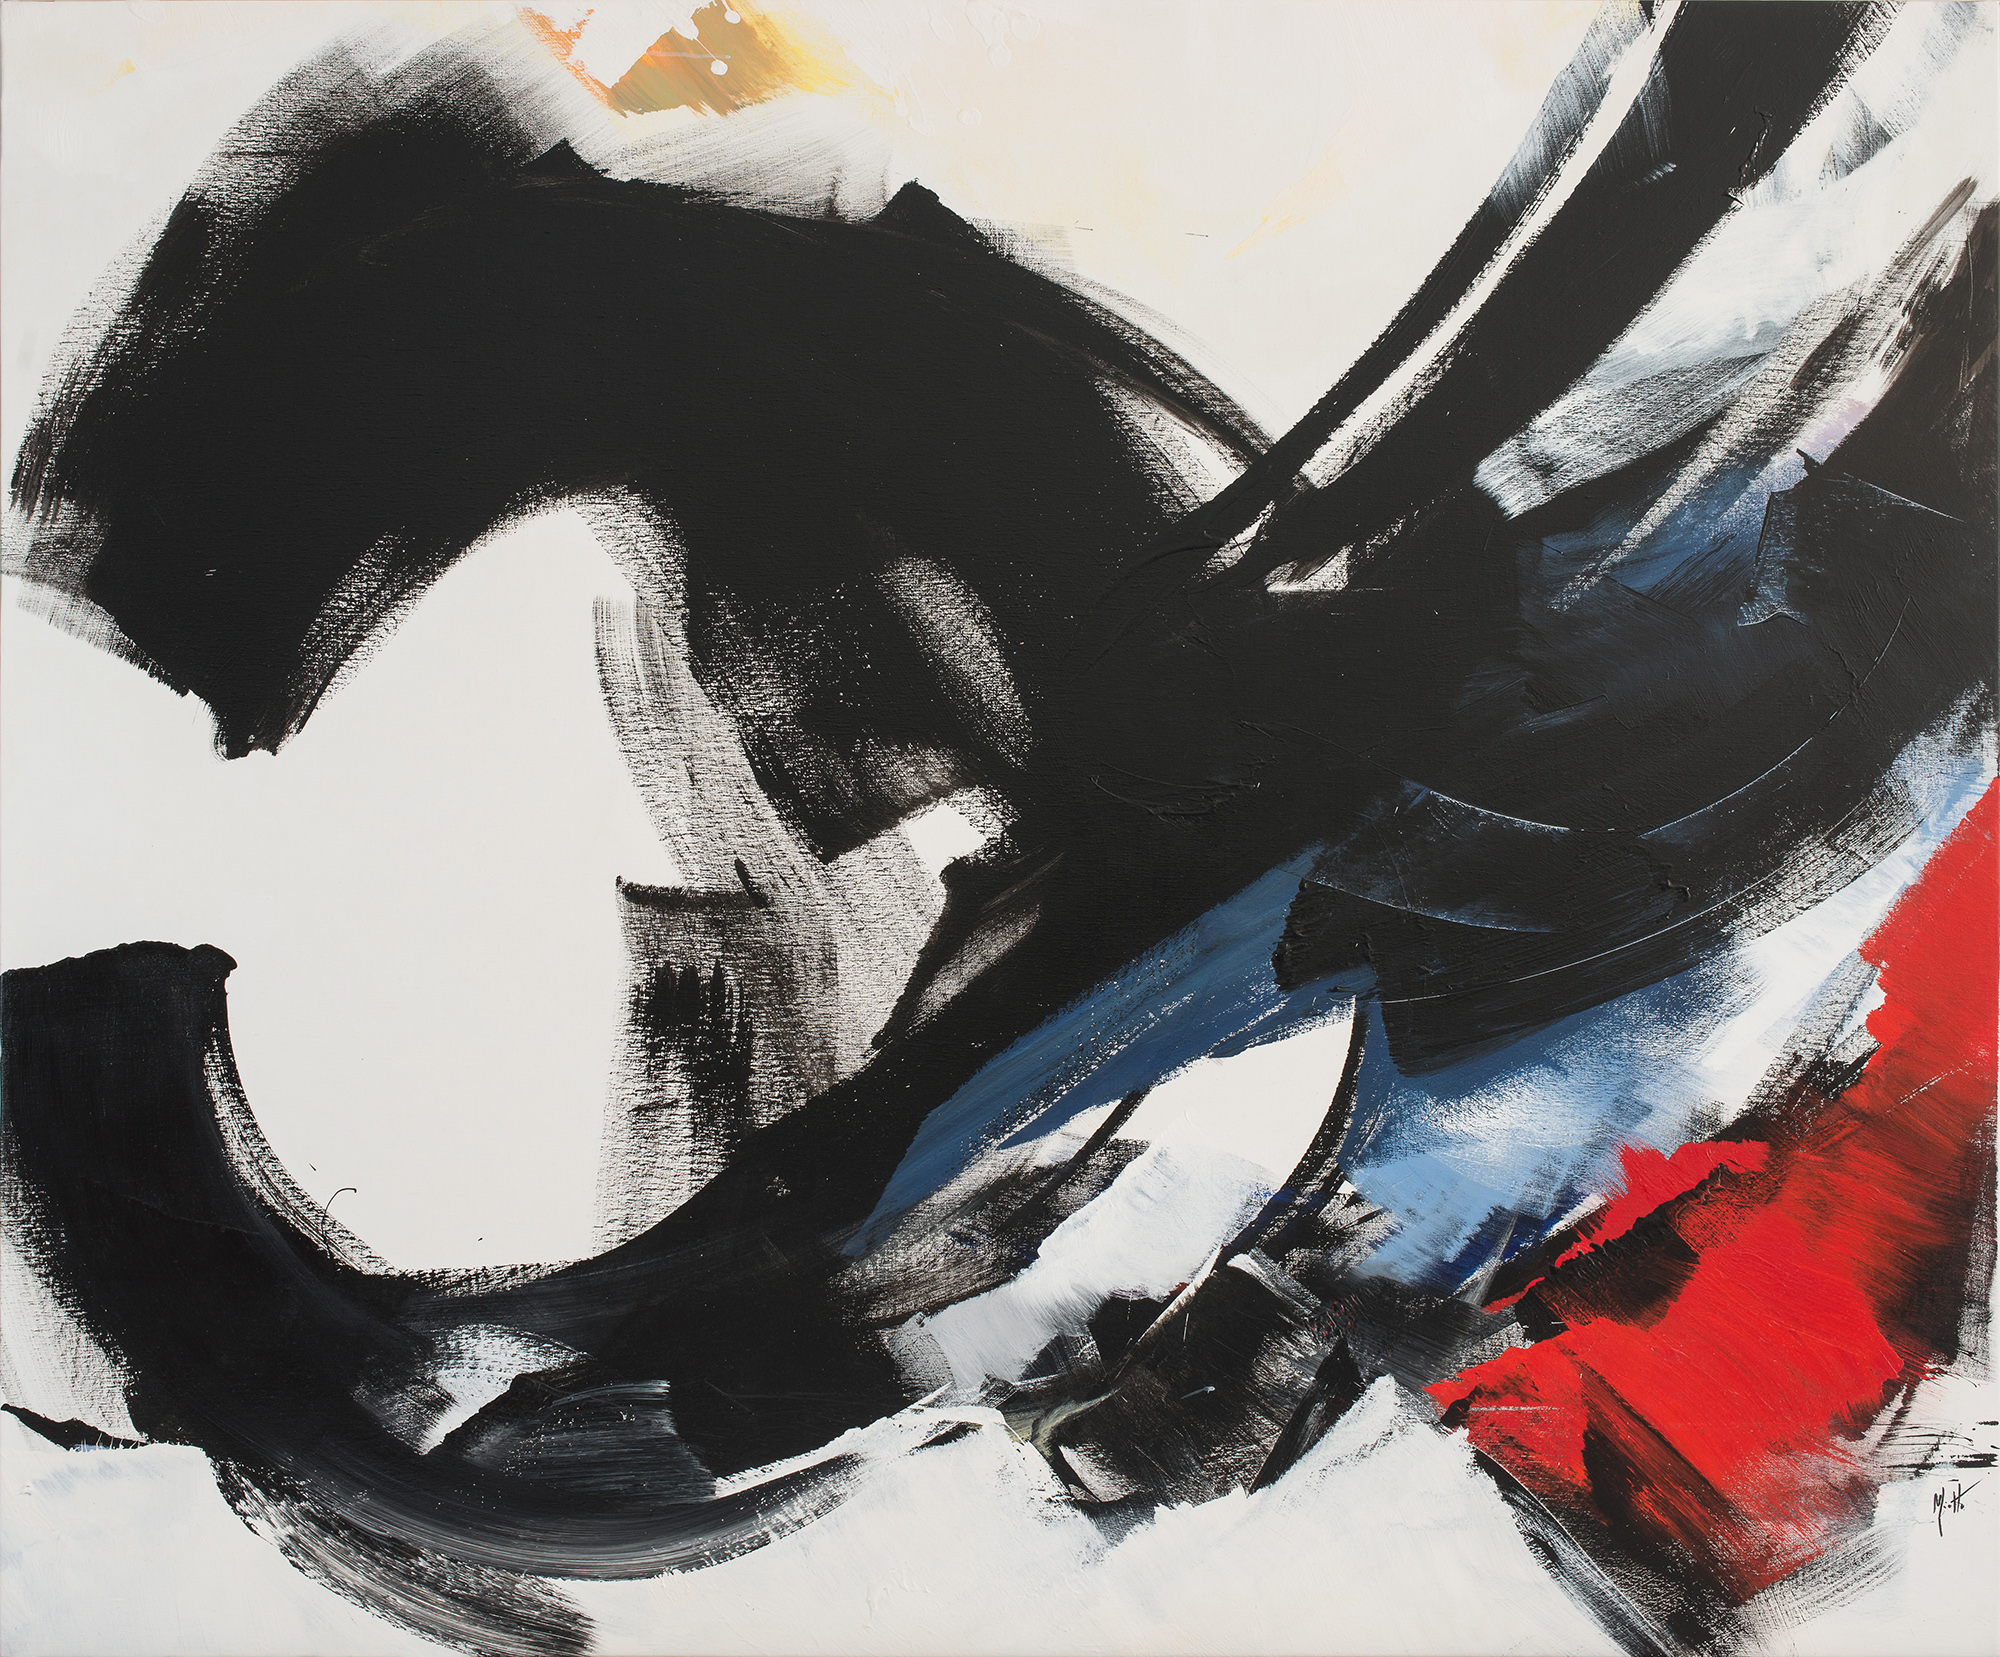 jean miotte - painting untitled c 2000